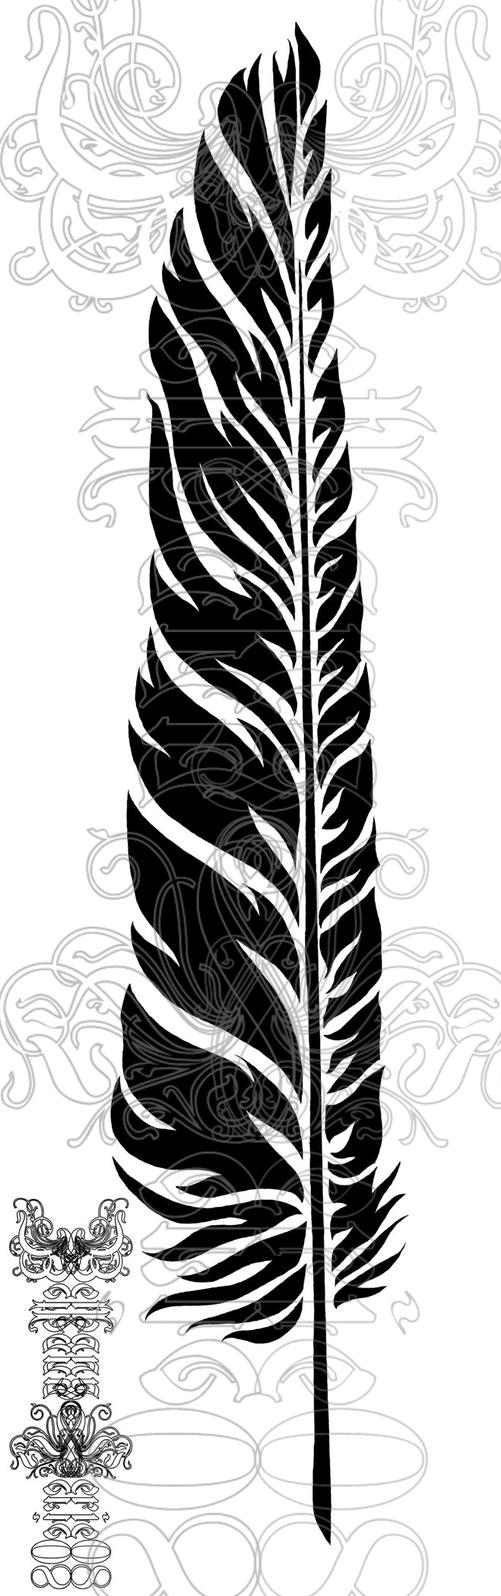 f718b4ce3 Images of Tribal Eagle Feather - industrious.info